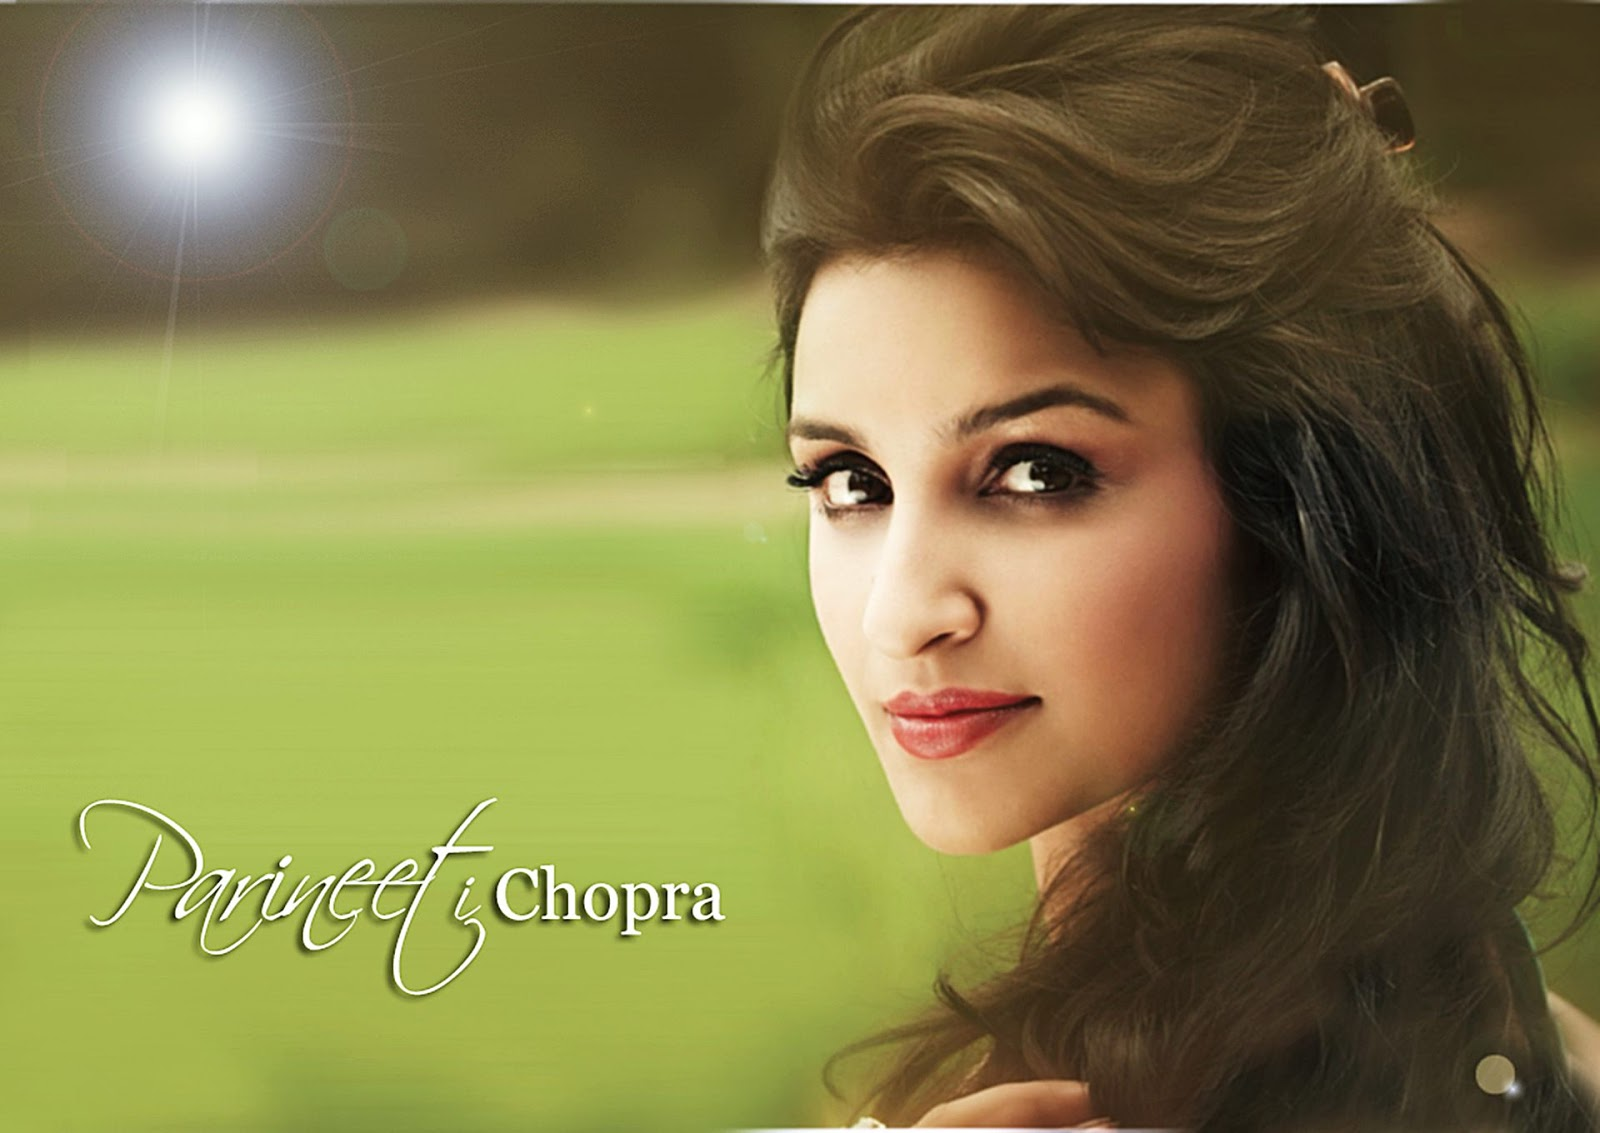 Parineeti Chopra HD Images and Wallpapers